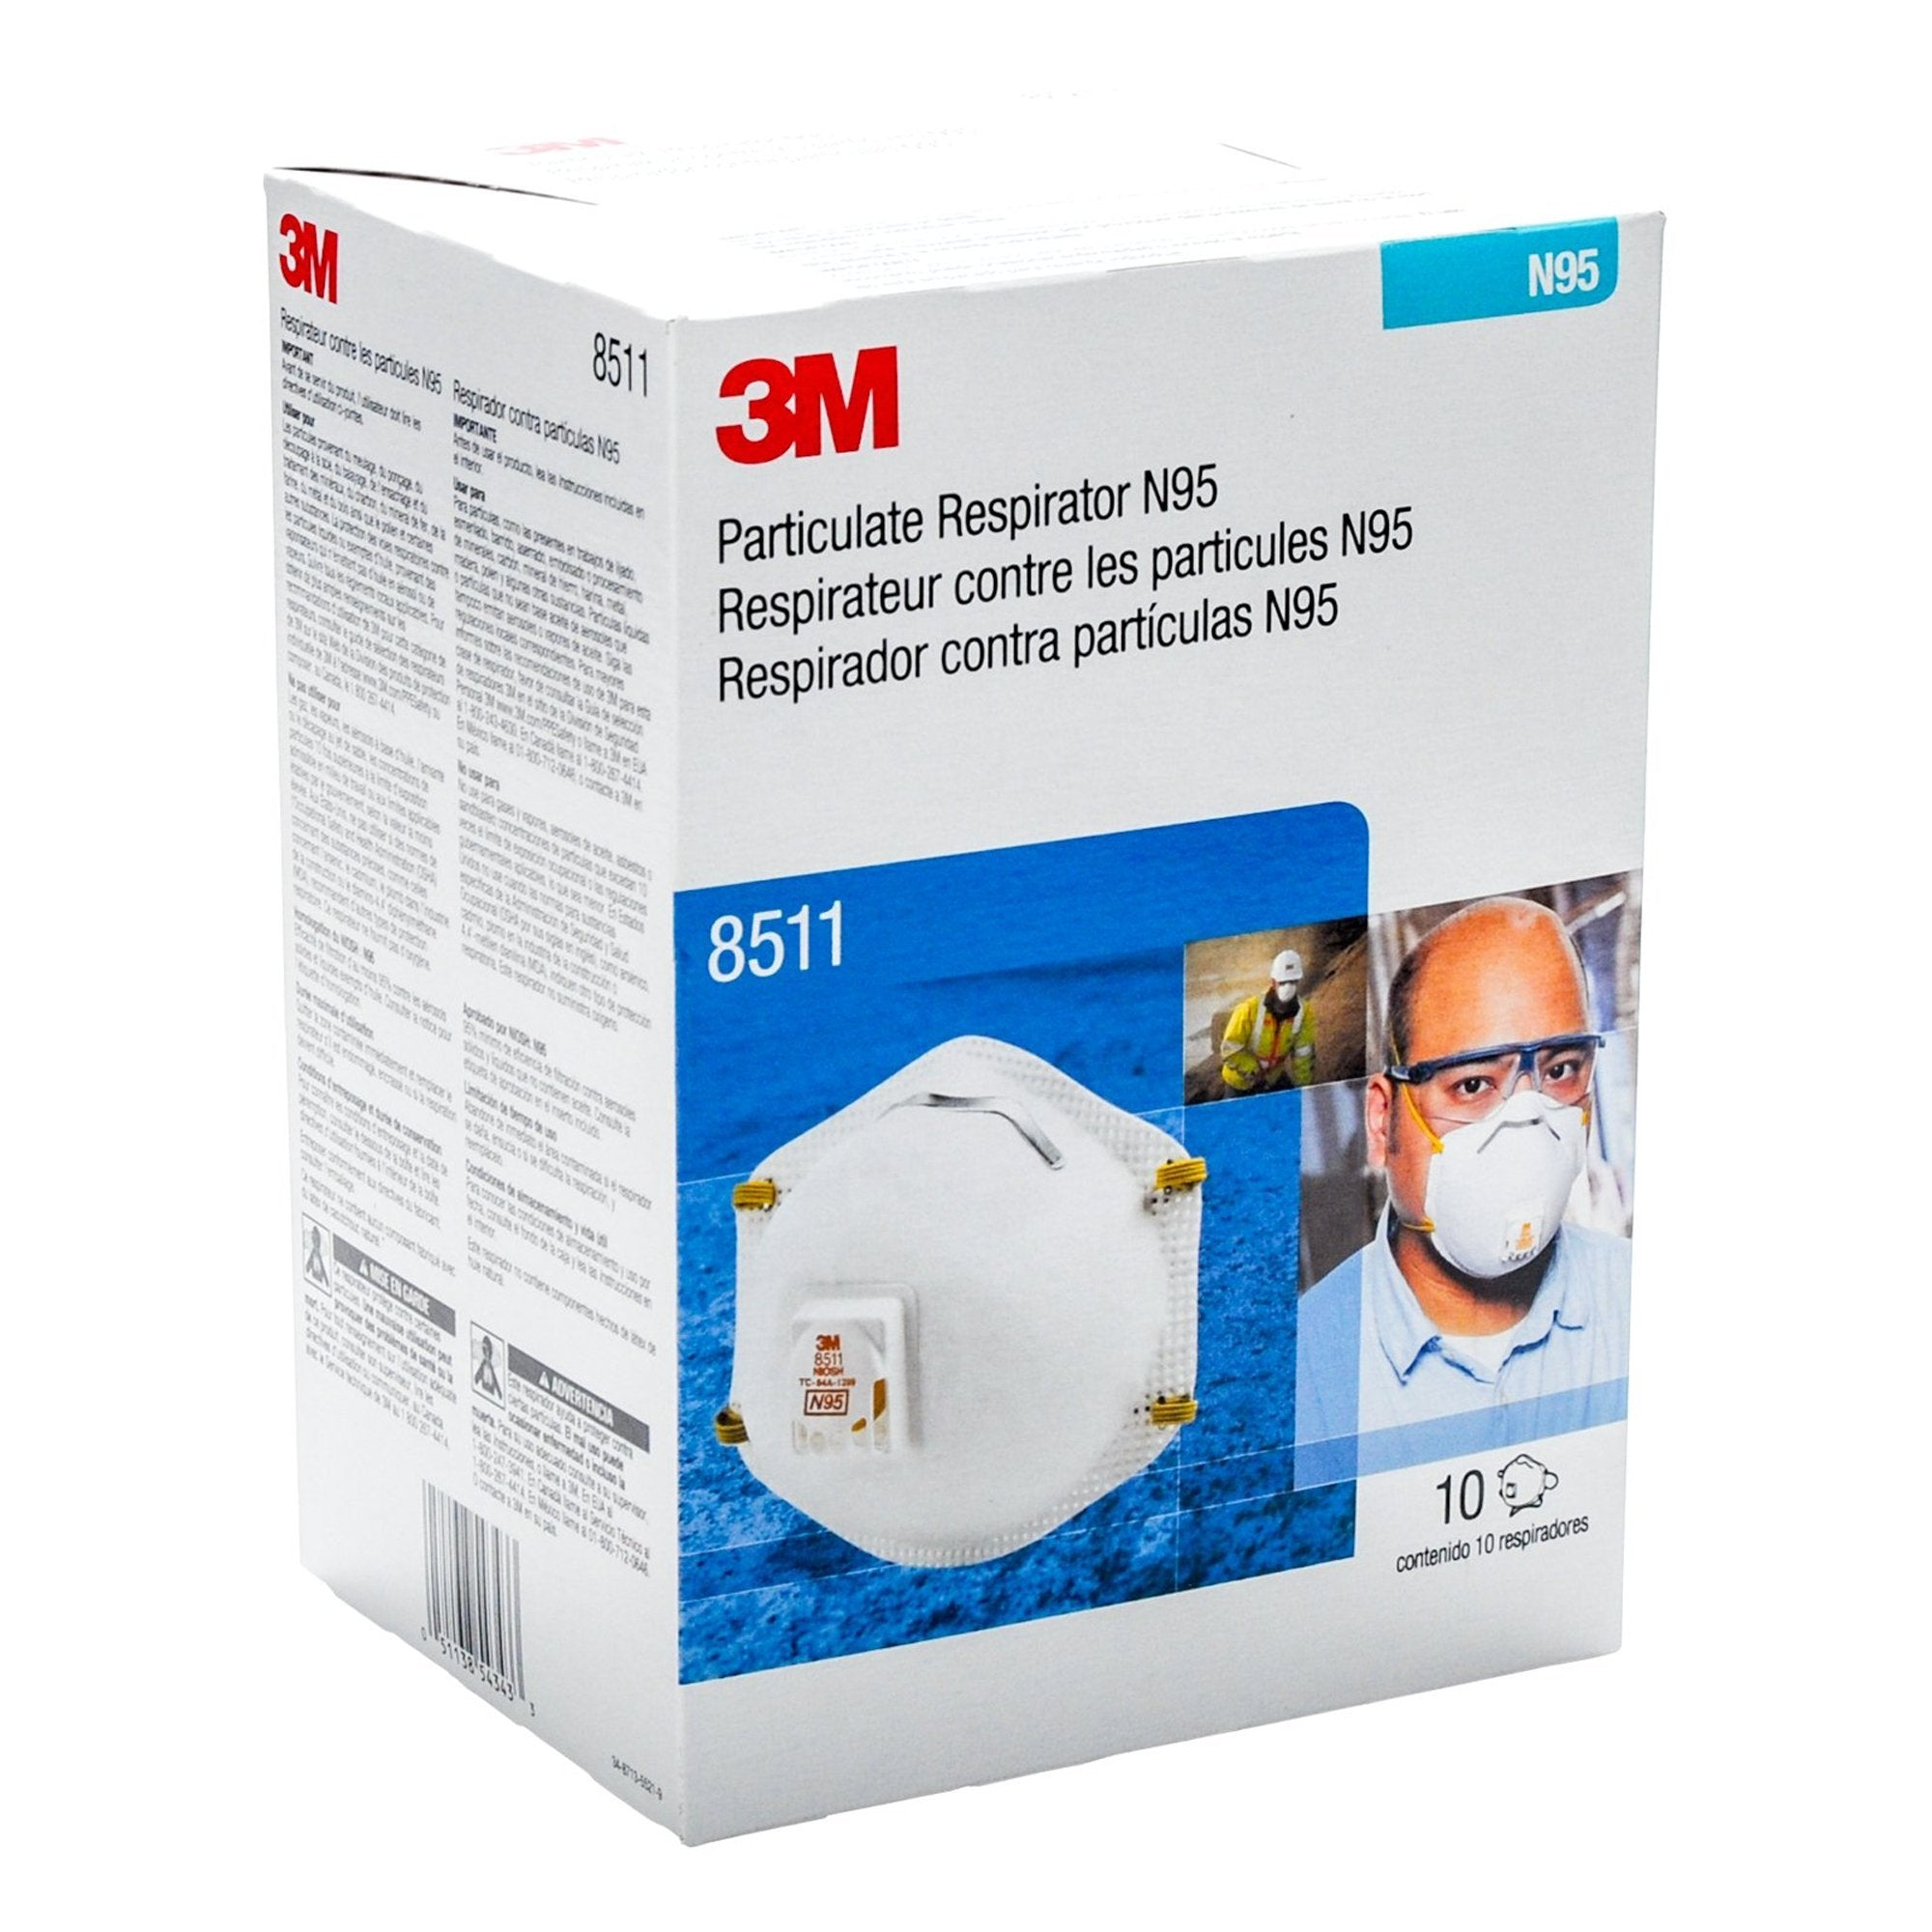 3M® N95 8511 Masks (10 Pack) Universal IN STOCK! CALL TO ORDER. - Bayview Pharmacy